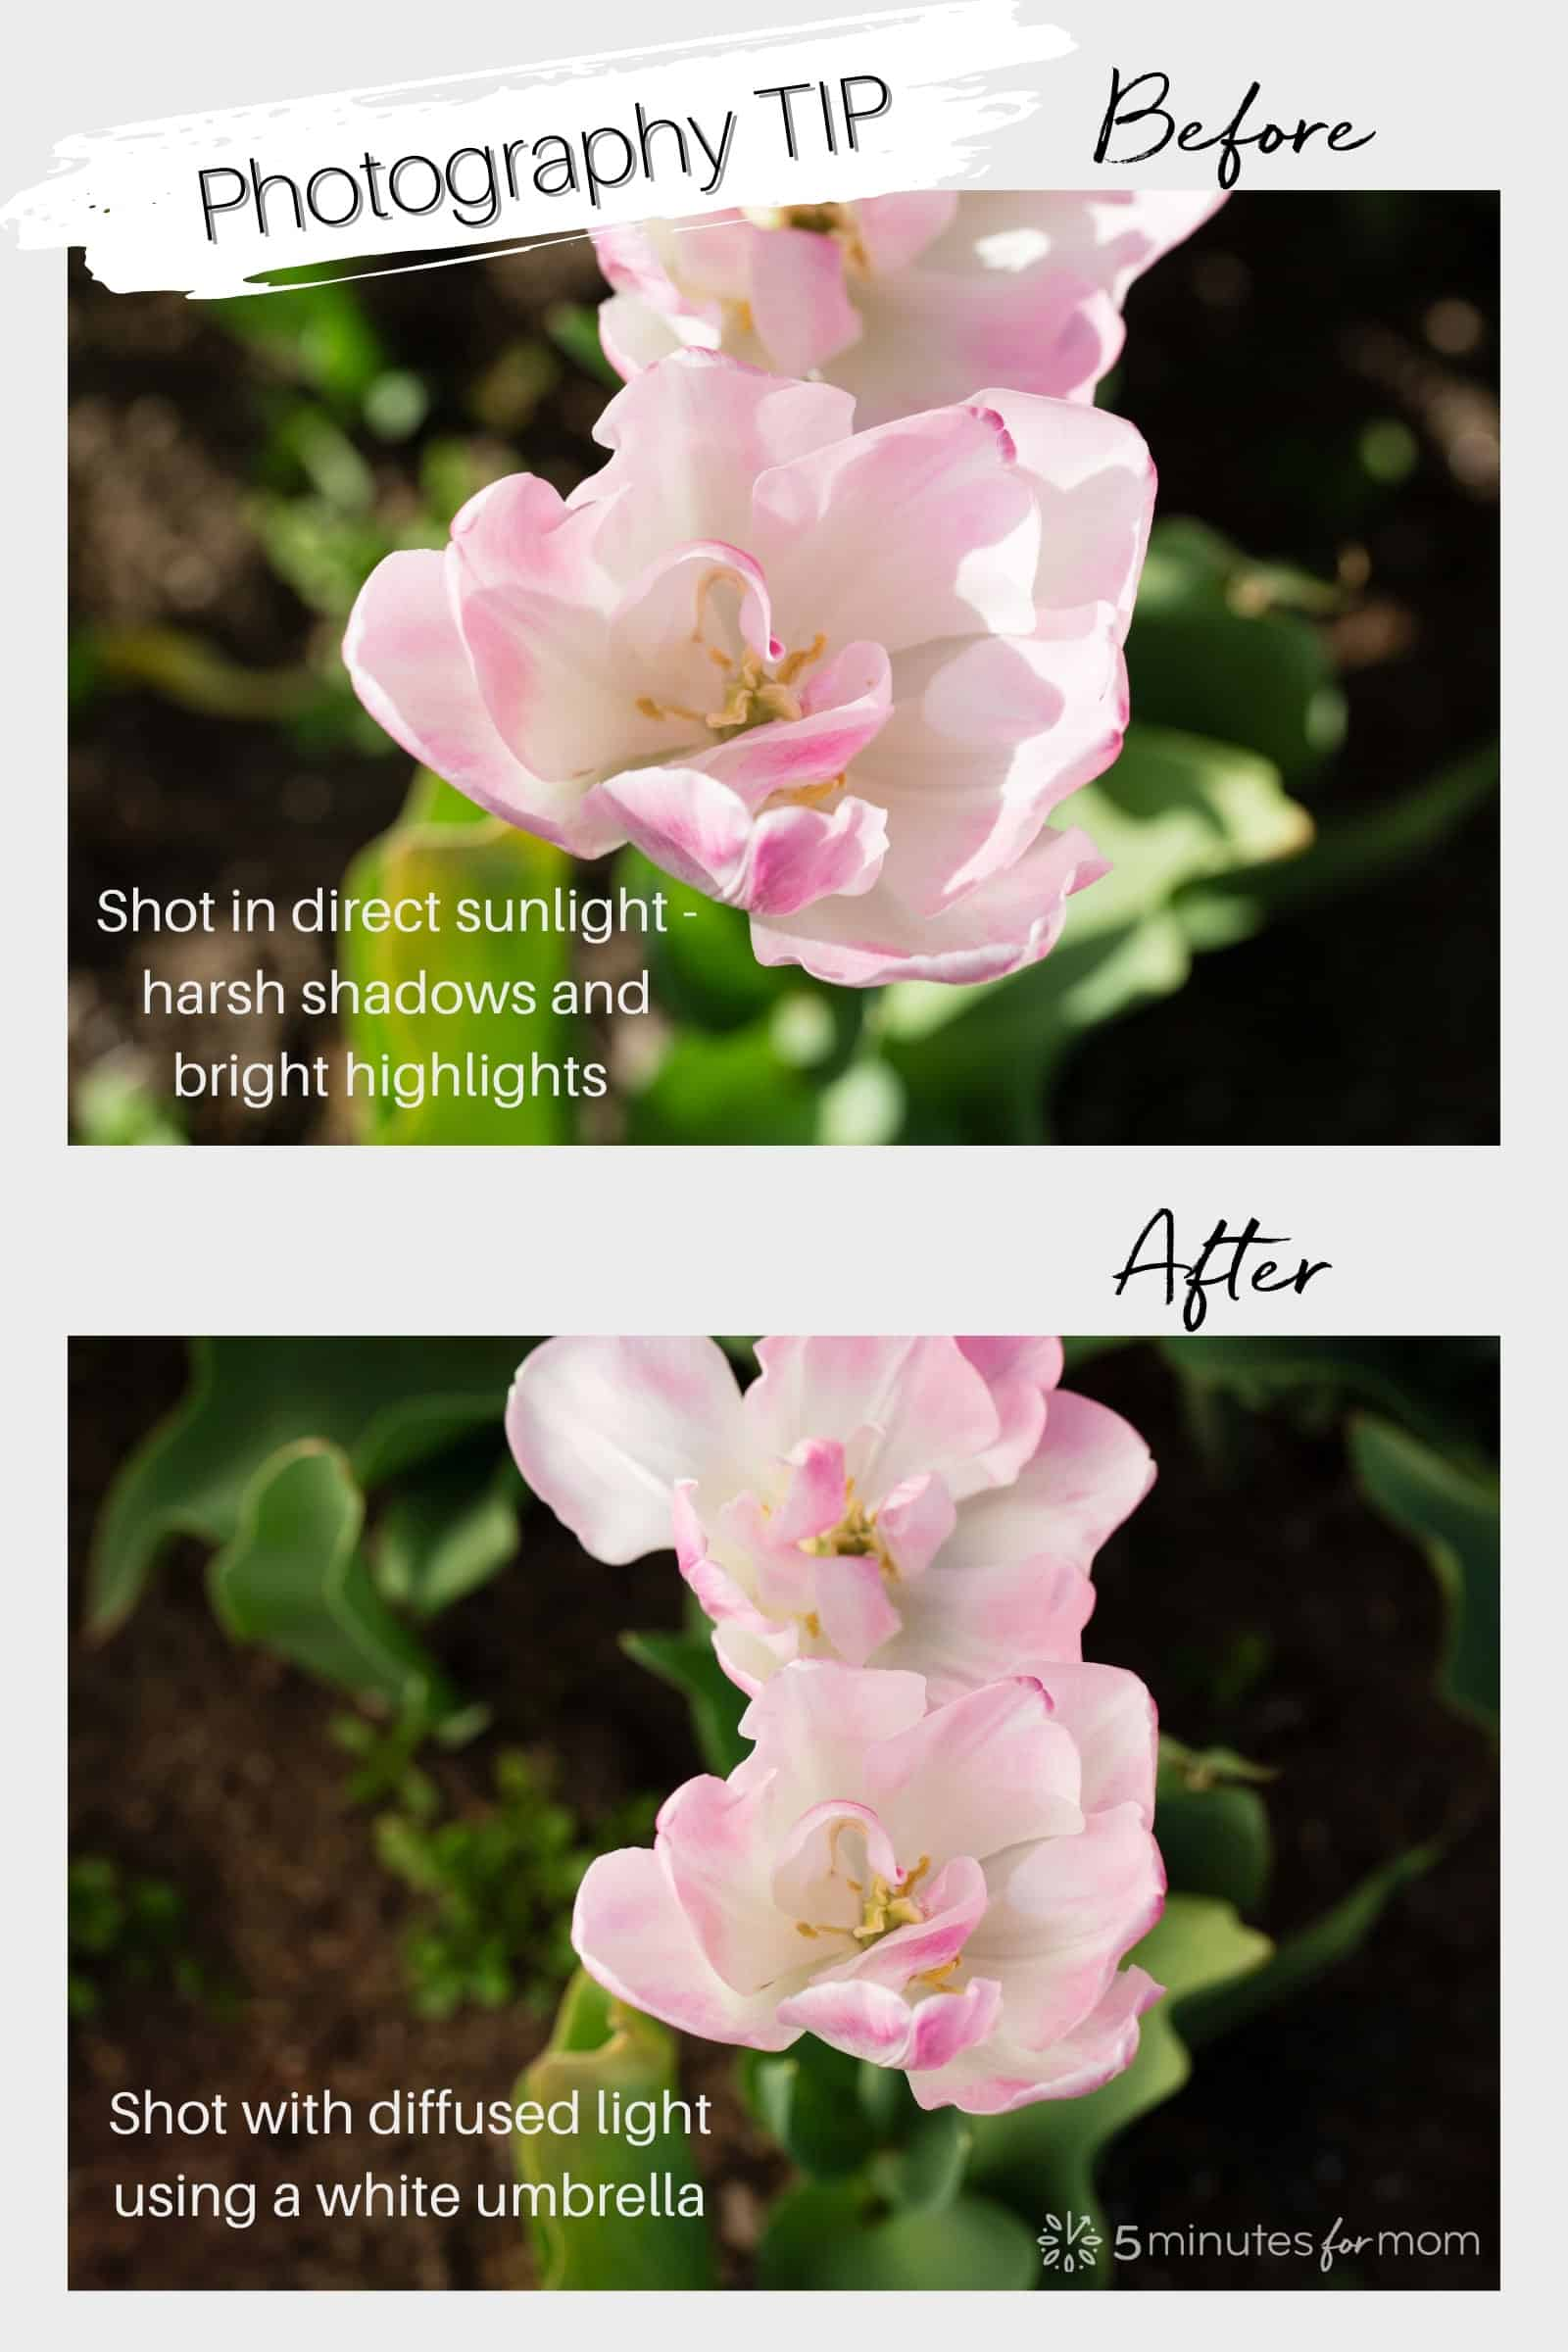 Before and after photo examples of photographing using diffused light through a white umbrella